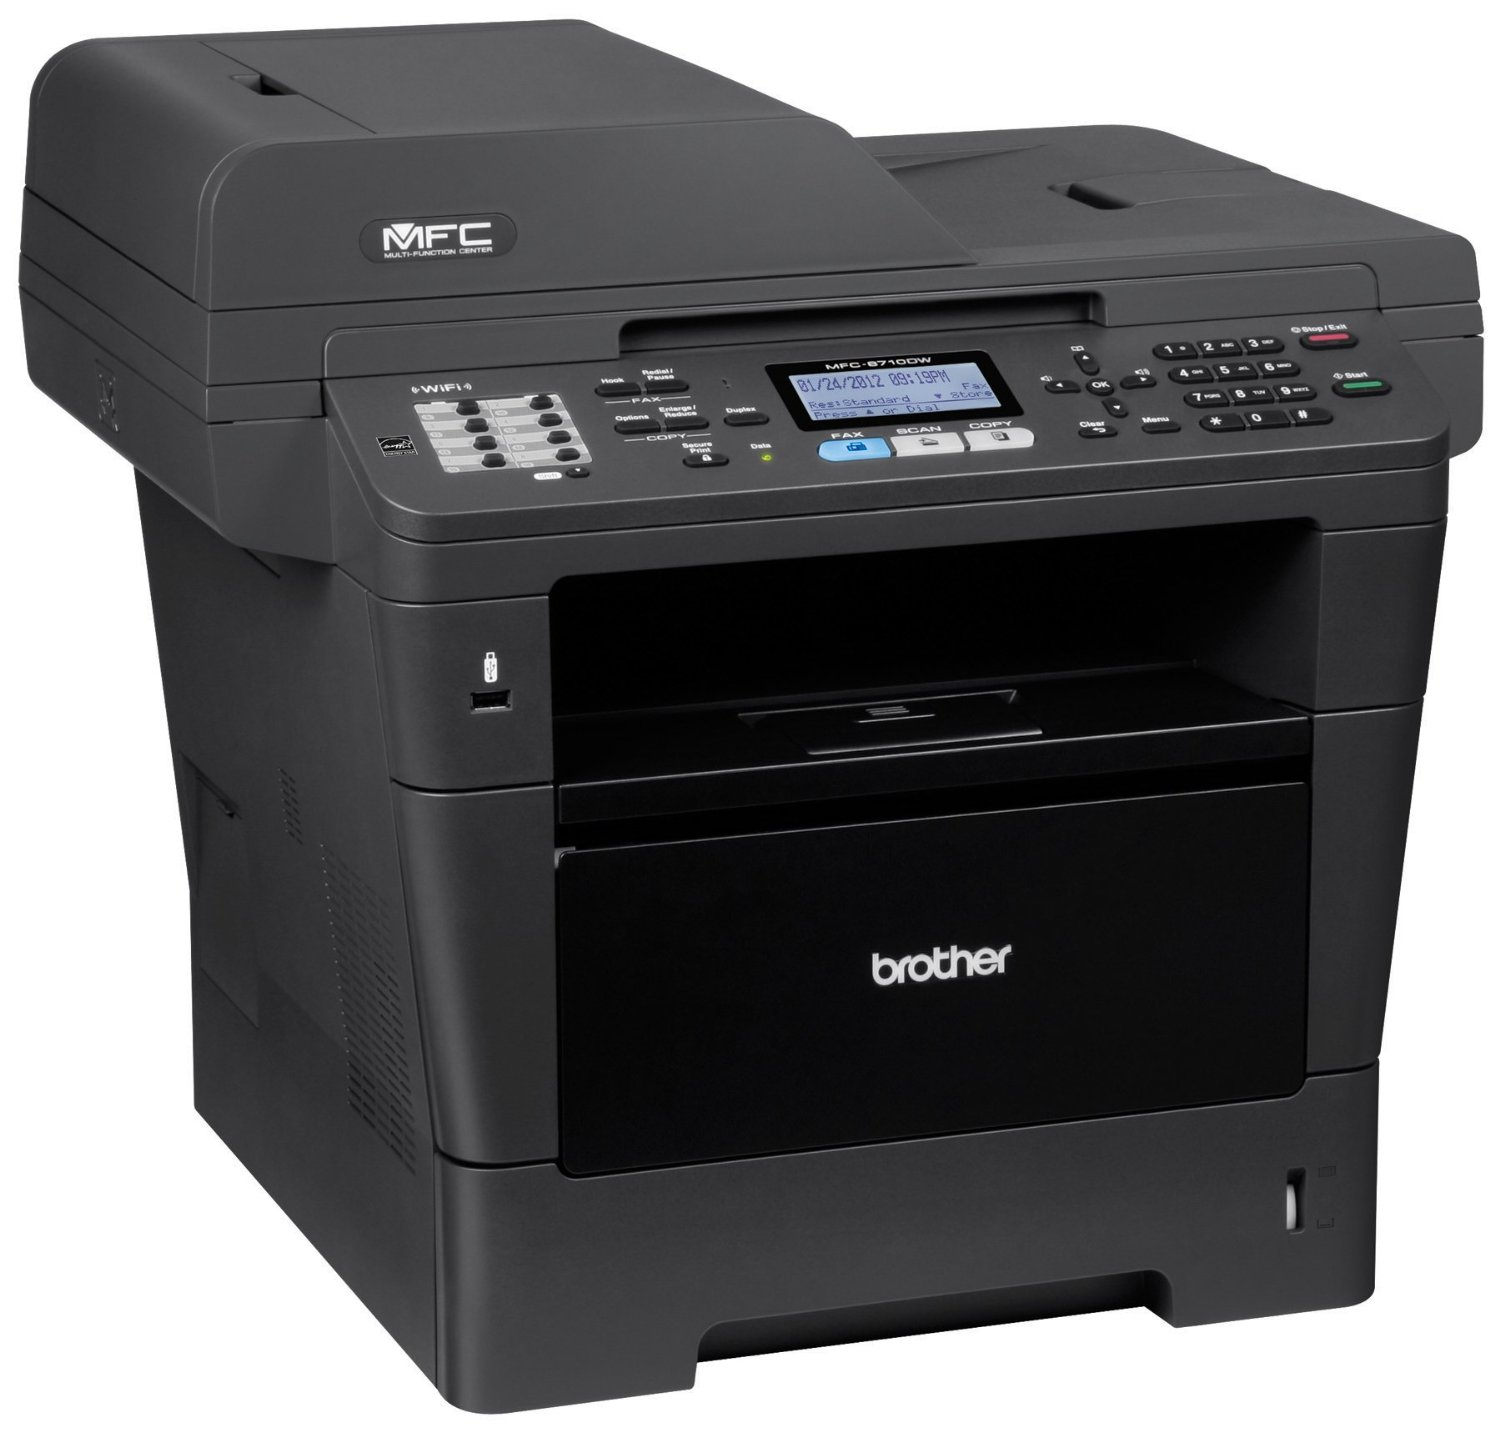 Driver for Brother MFC-8710DW Printer